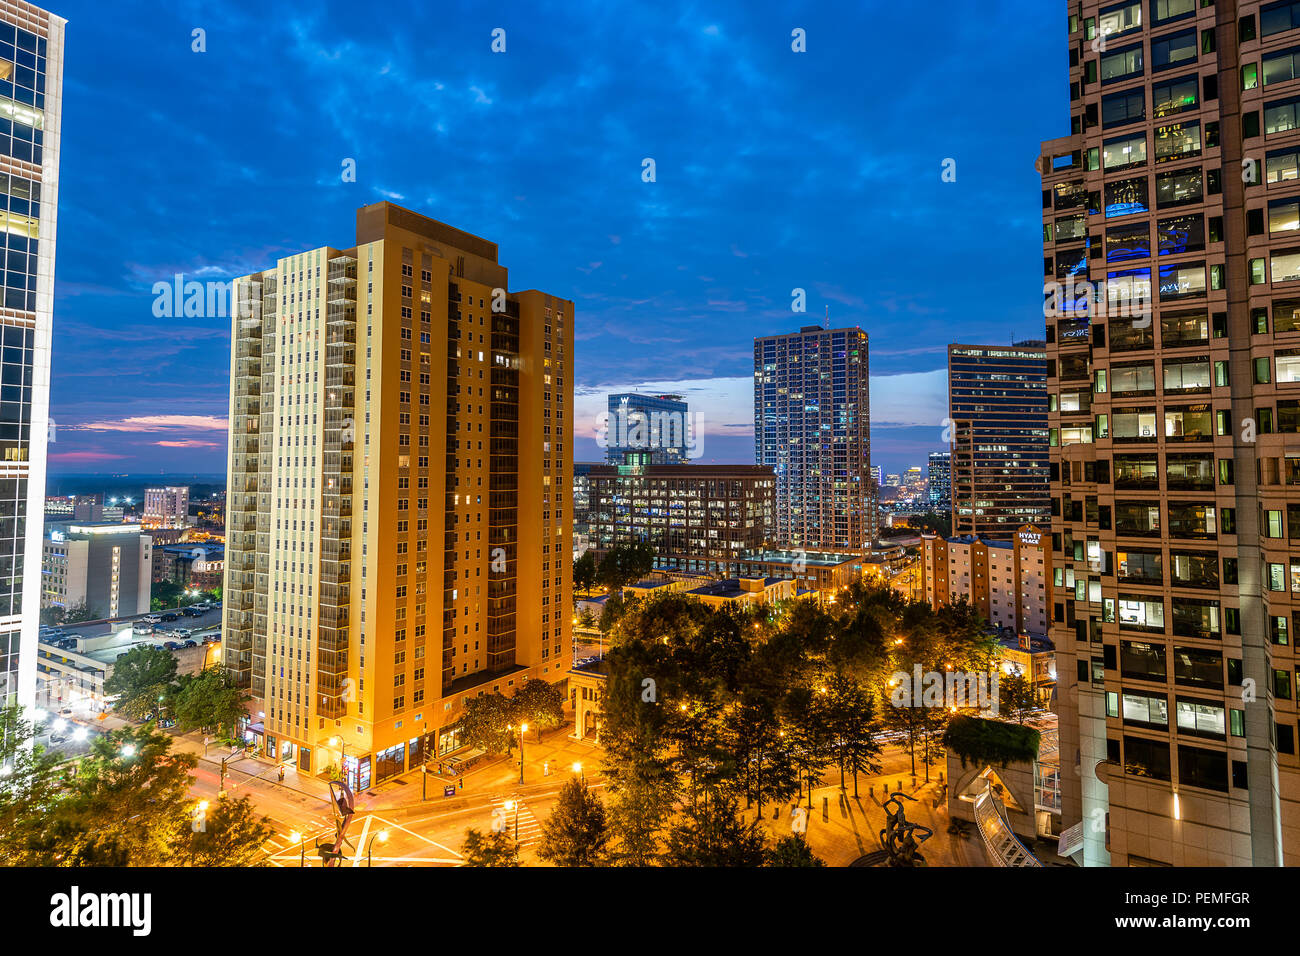 Atlanta, Georgia Skyline - Stock Image